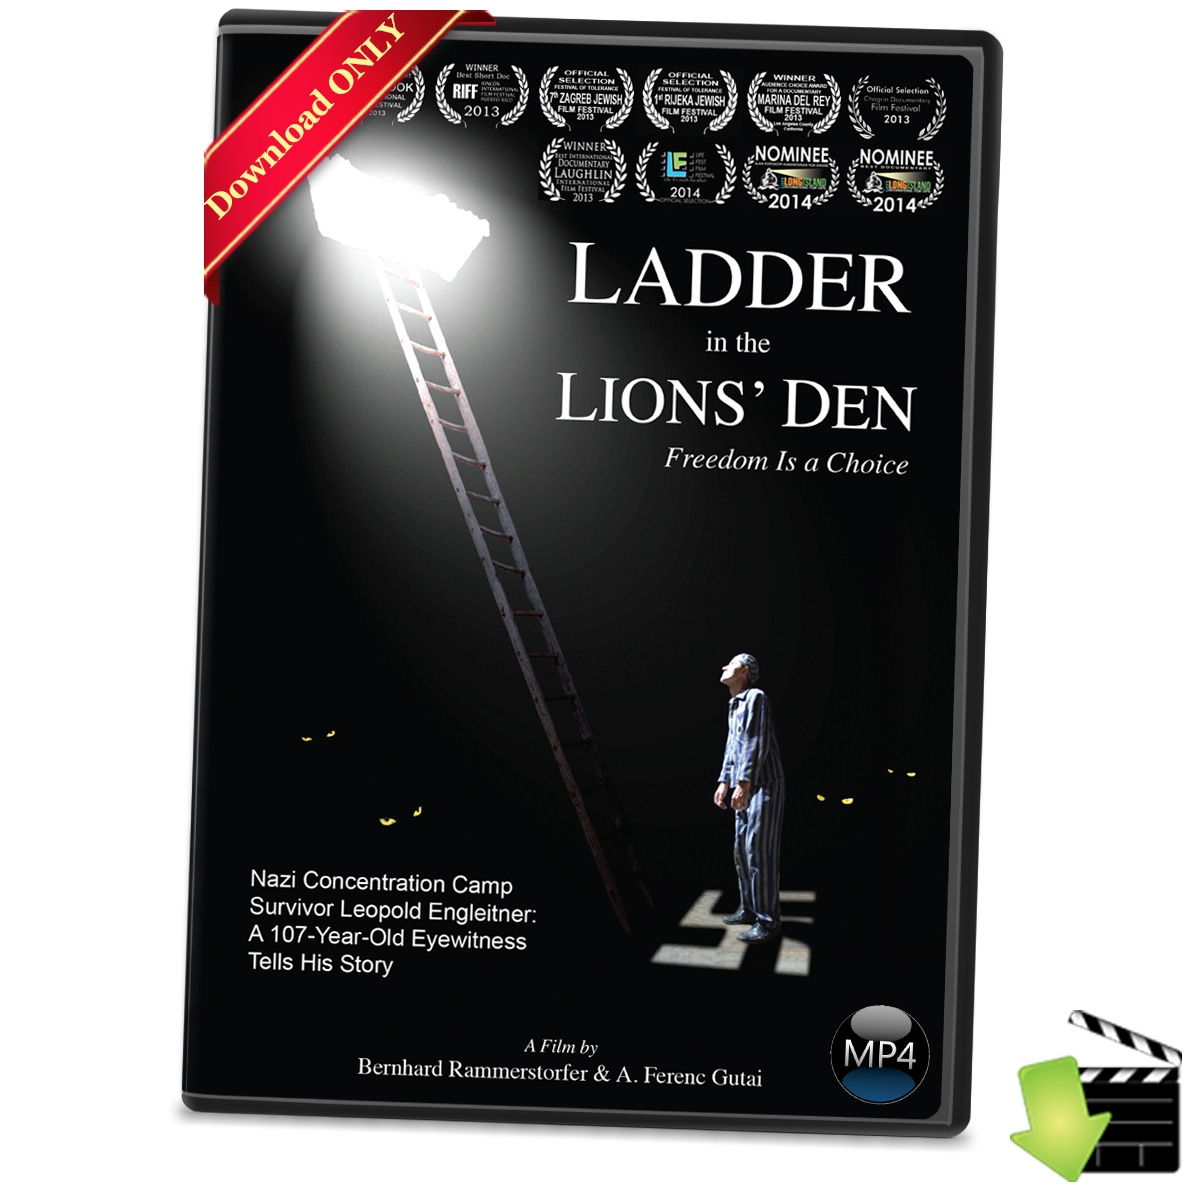 Leopold engleitner ladder in the lions den jw movies view larger photo email fandeluxe Images